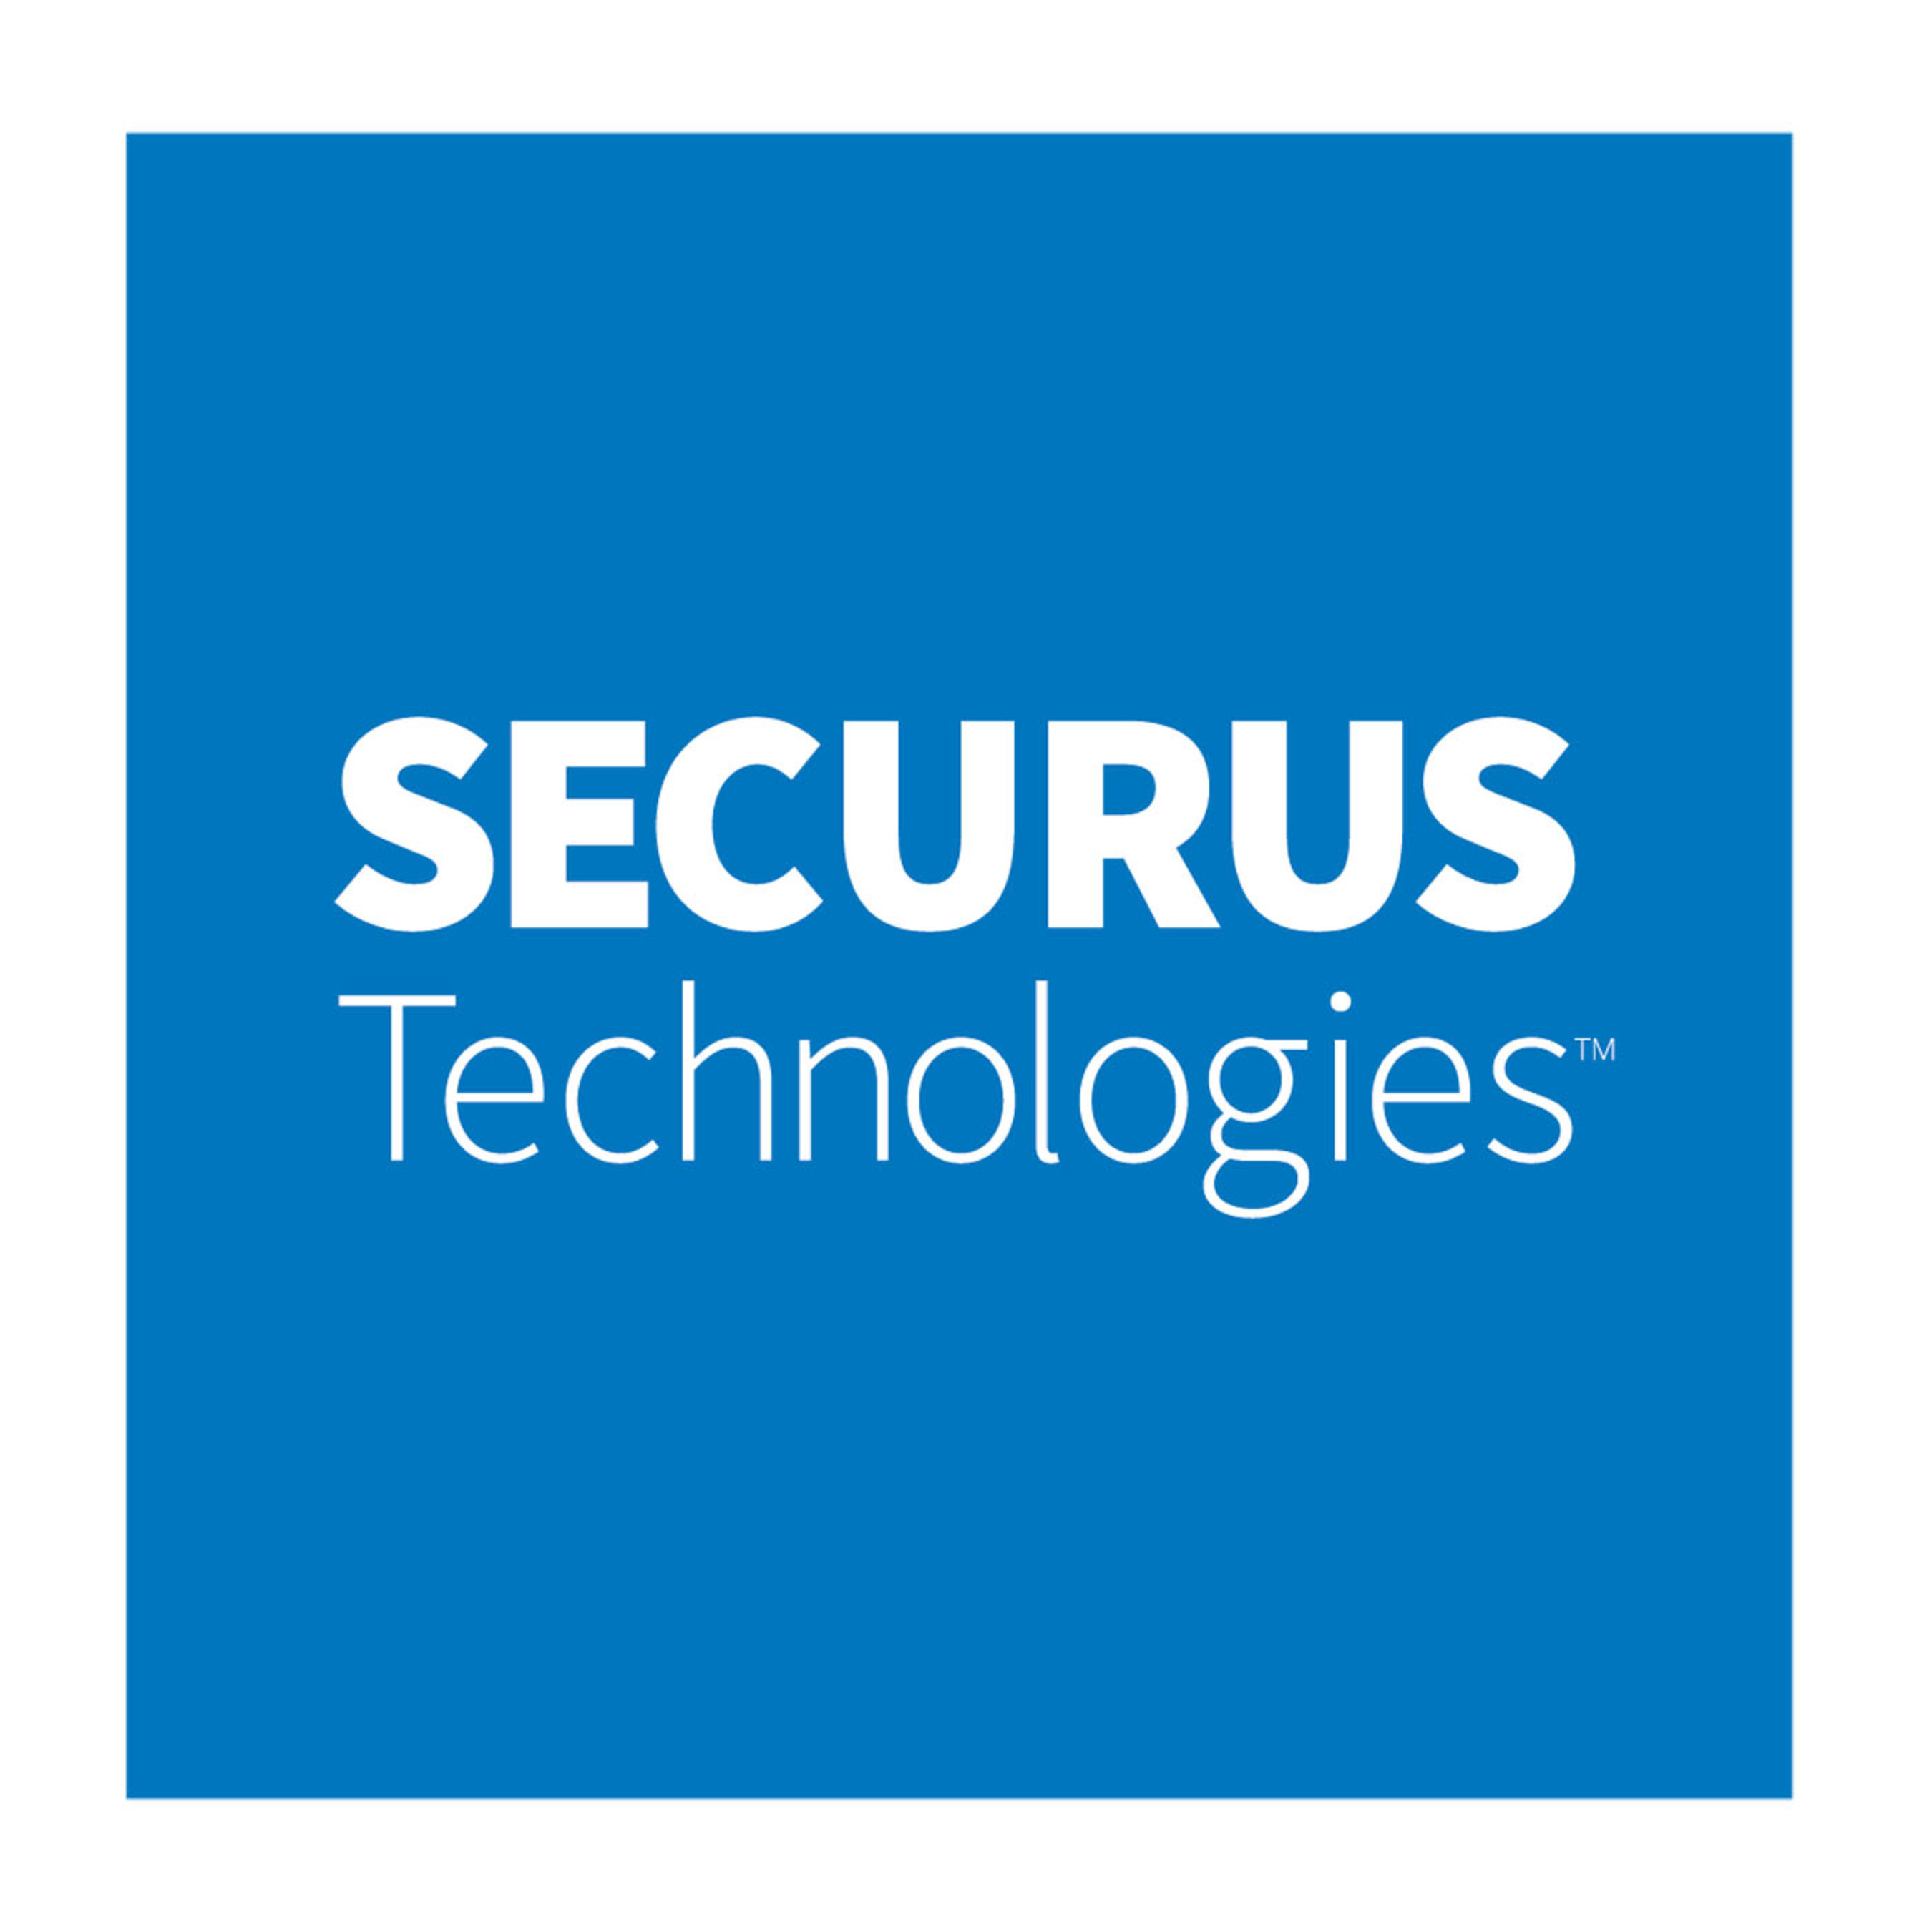 Securus' Managed Access System Deployments Reduce and Eliminate Contraband Wireless Threats